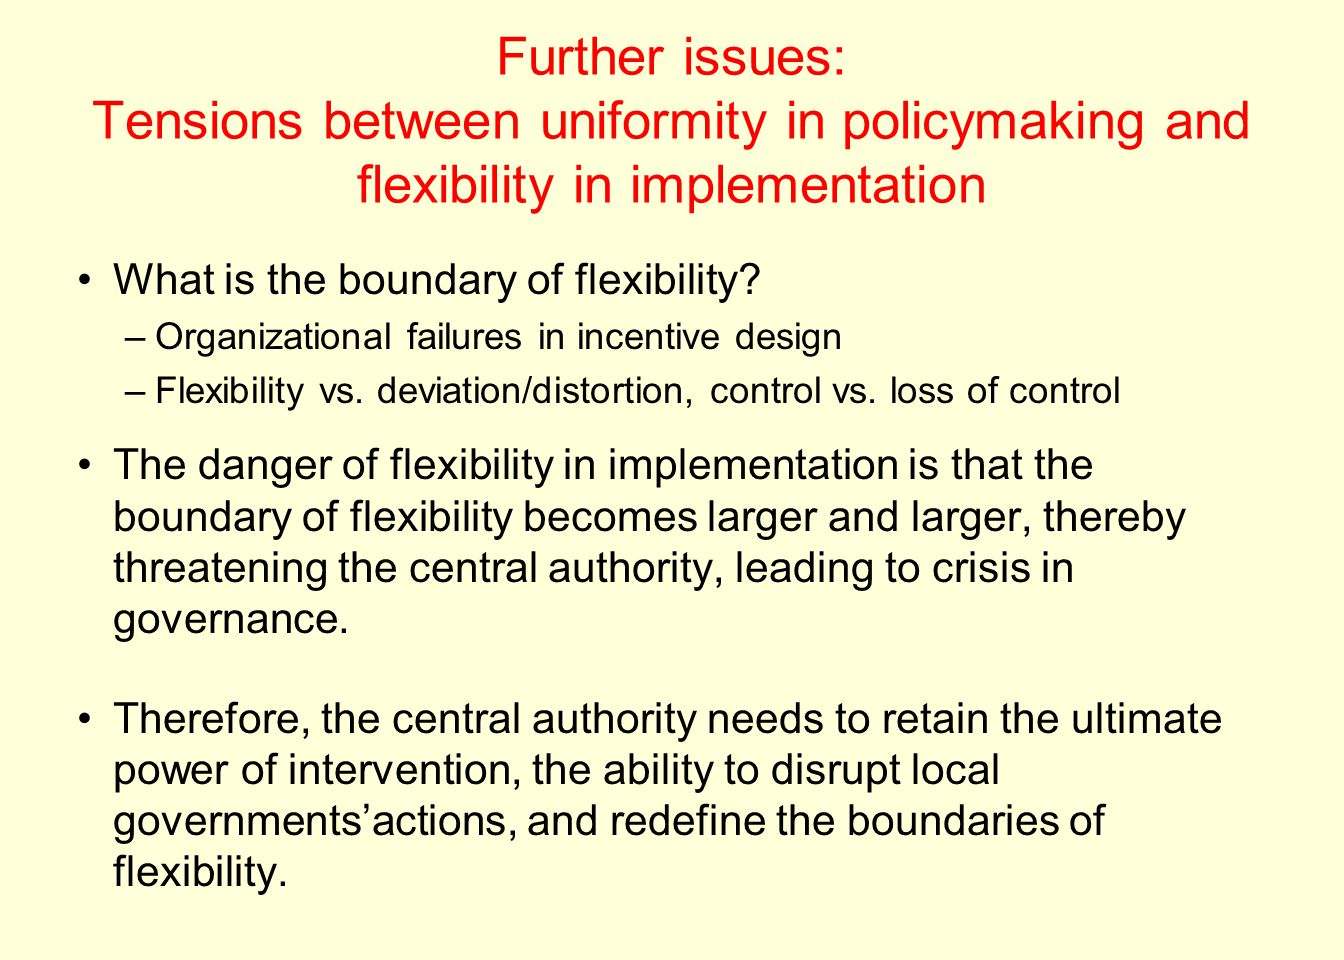 Further issues: Tensions between uniformity in policymaking and flexibility in implementation